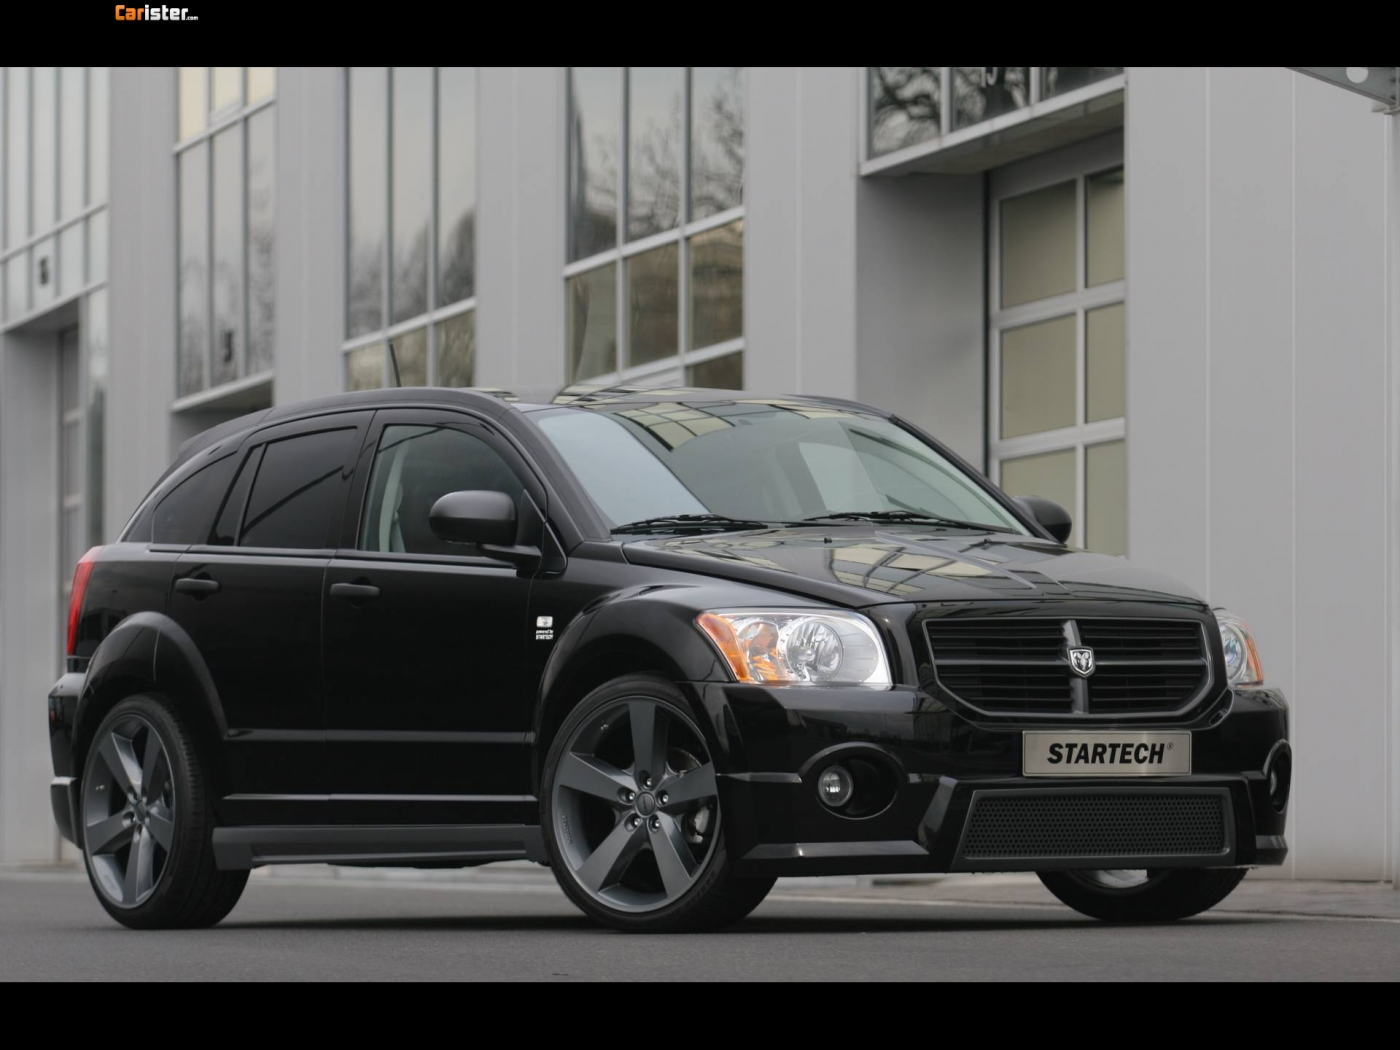 Startech Dodge Caliber 2007 - Photo 01 - Taille: 1400x1050